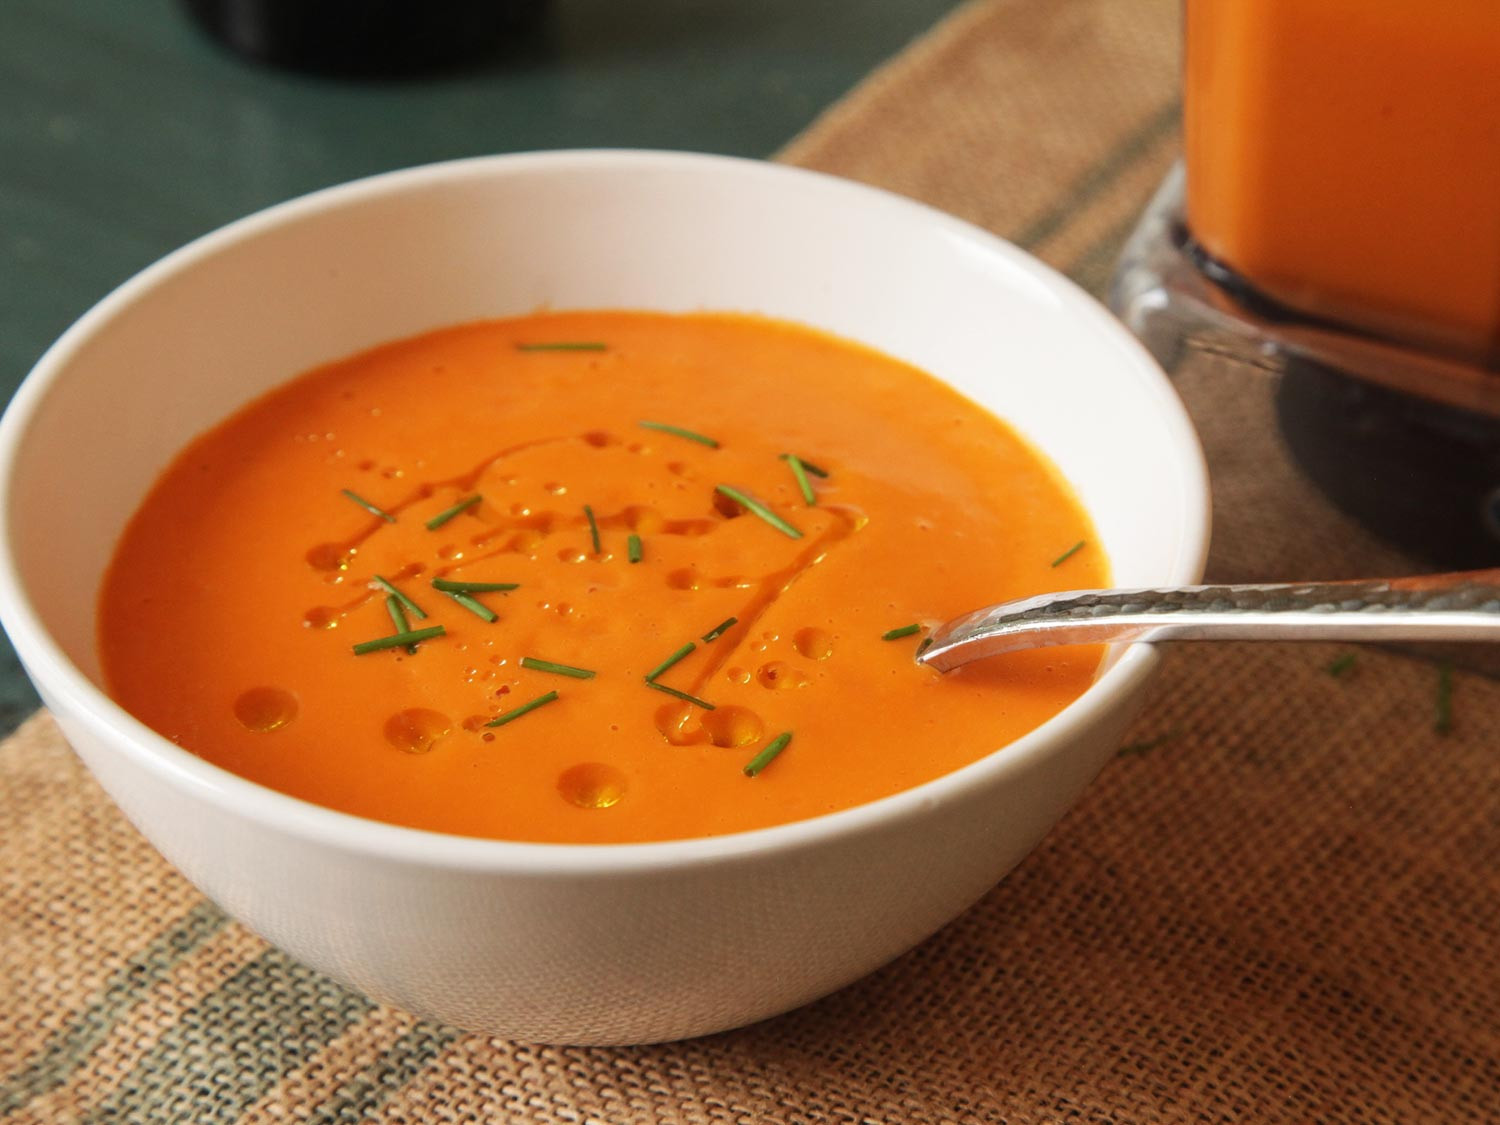 Vegan Tomato Soup  15 Minute Creamy Tomato Soup Vegan Recipe